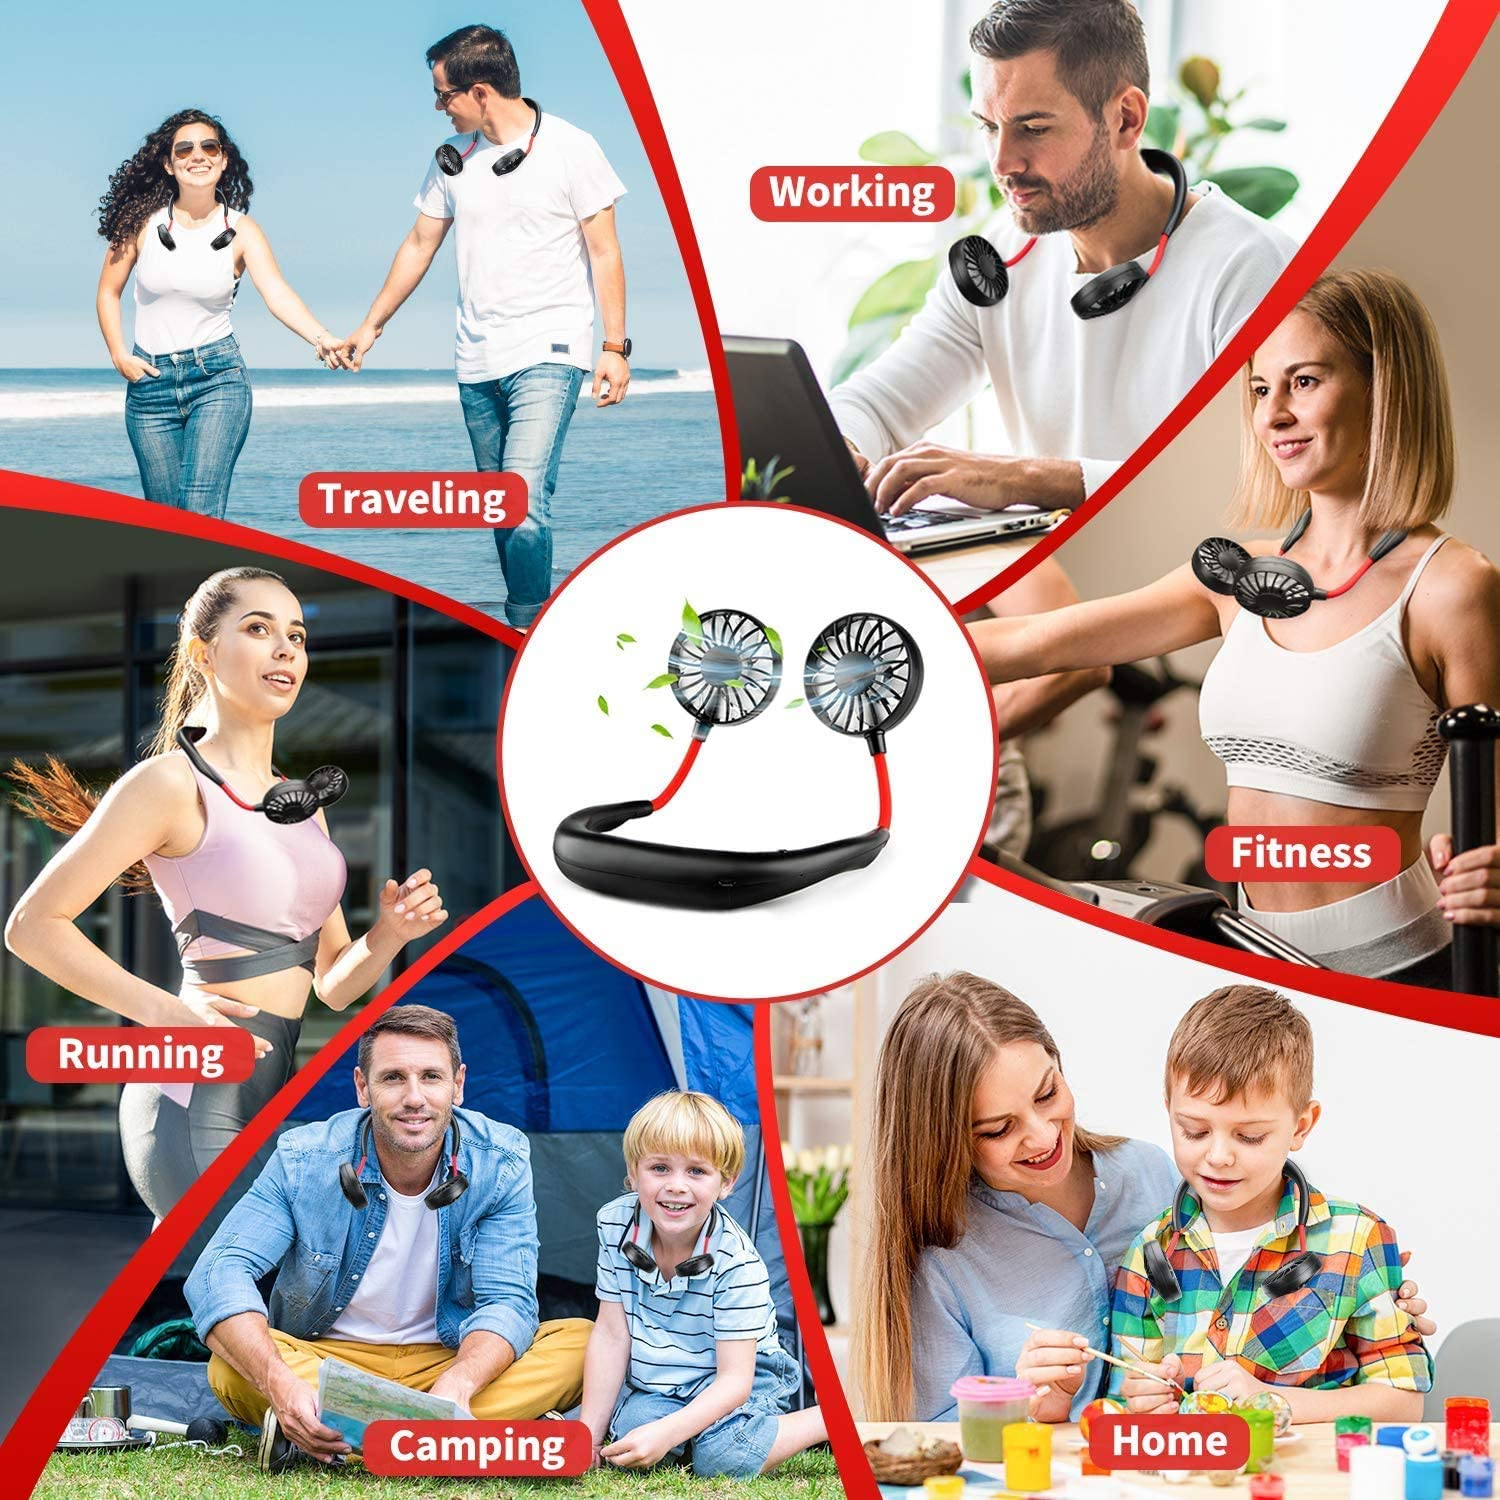 Neck Portable Fan, Hand Free Personal Mini Fans USB Rechargeable,360 Degree Free Rotation for Traveling, Sports, Office, Reading (3 Speed Adjustable, Headphone Design) Wearable Neckband Cooler (white)